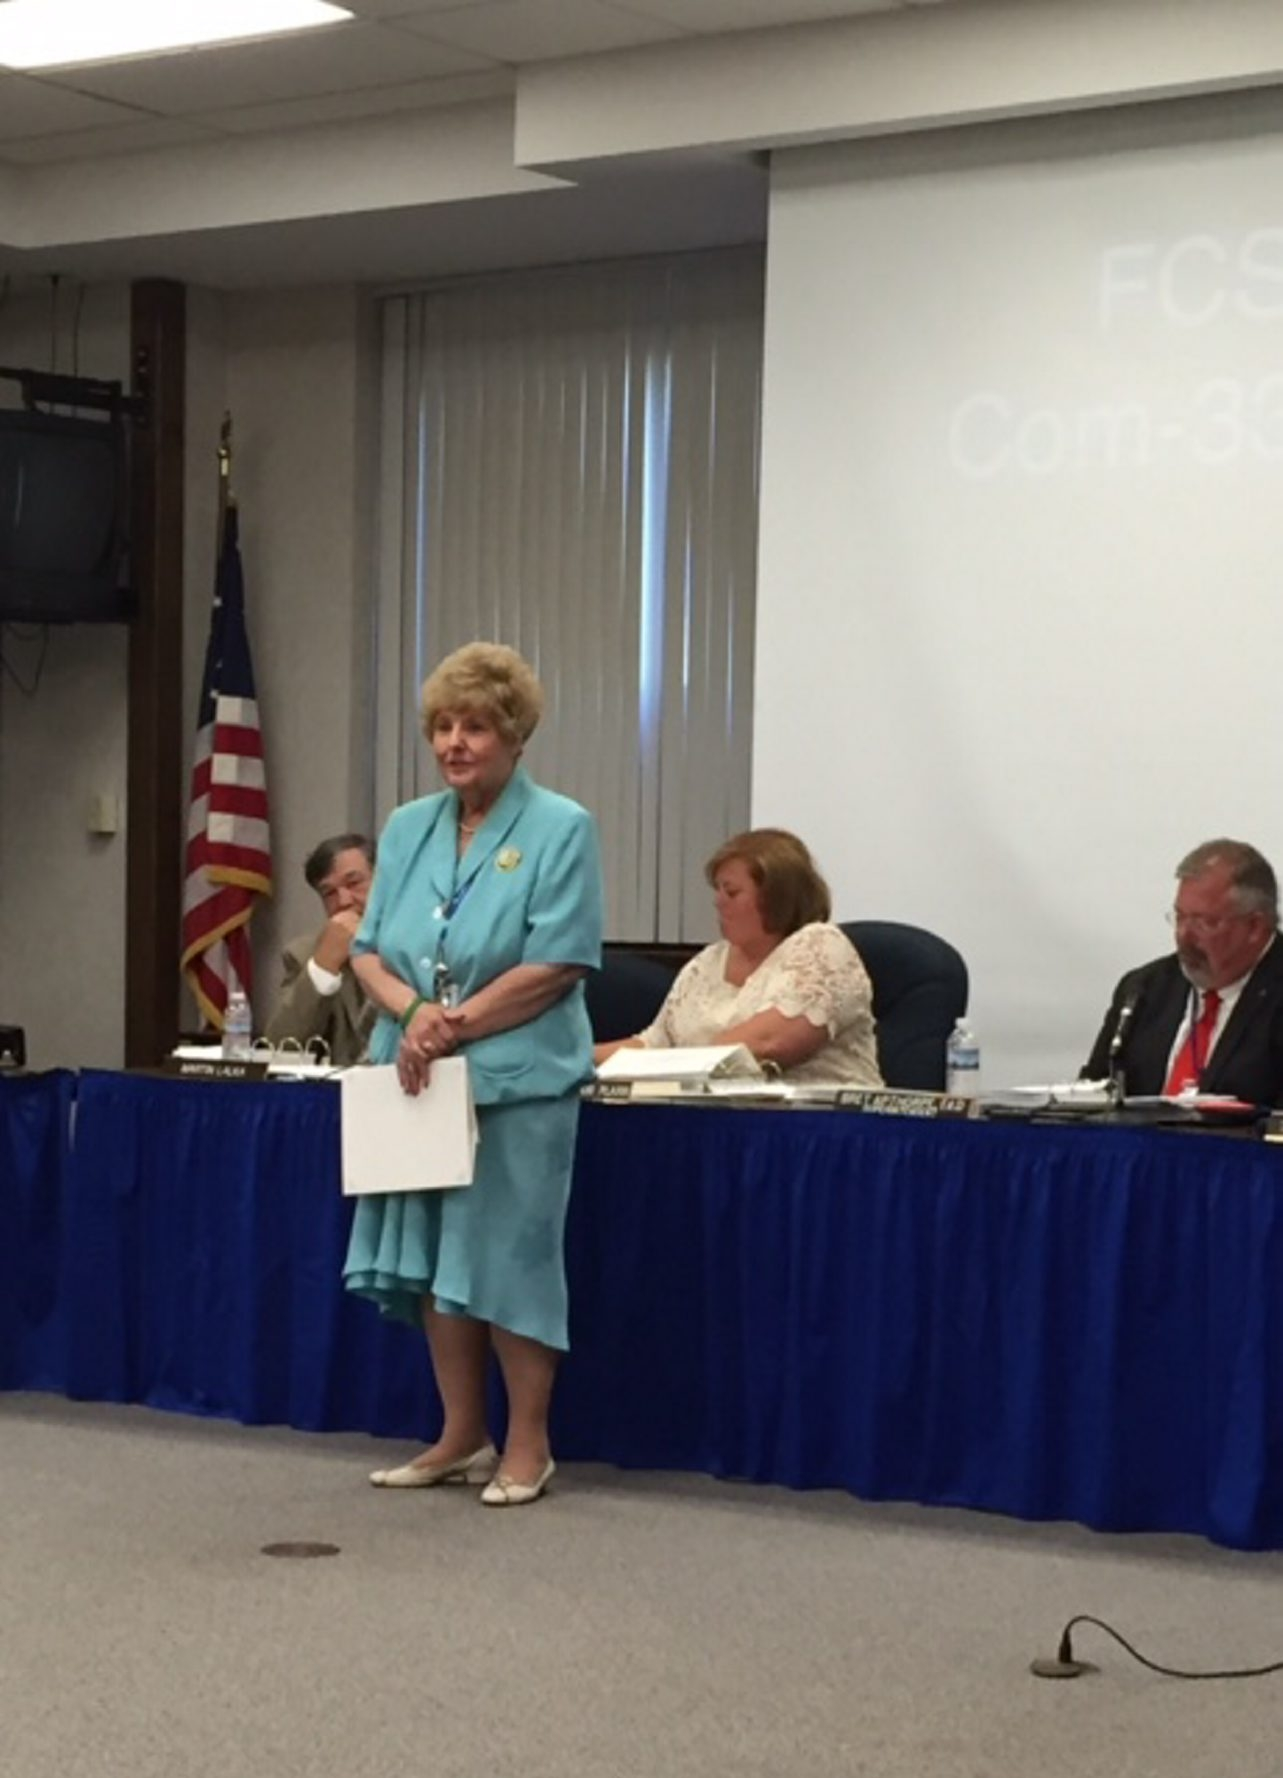 Retiring Principal Joanne Saniewski reflects on her 52 years in education, including 26 years at Frontier.